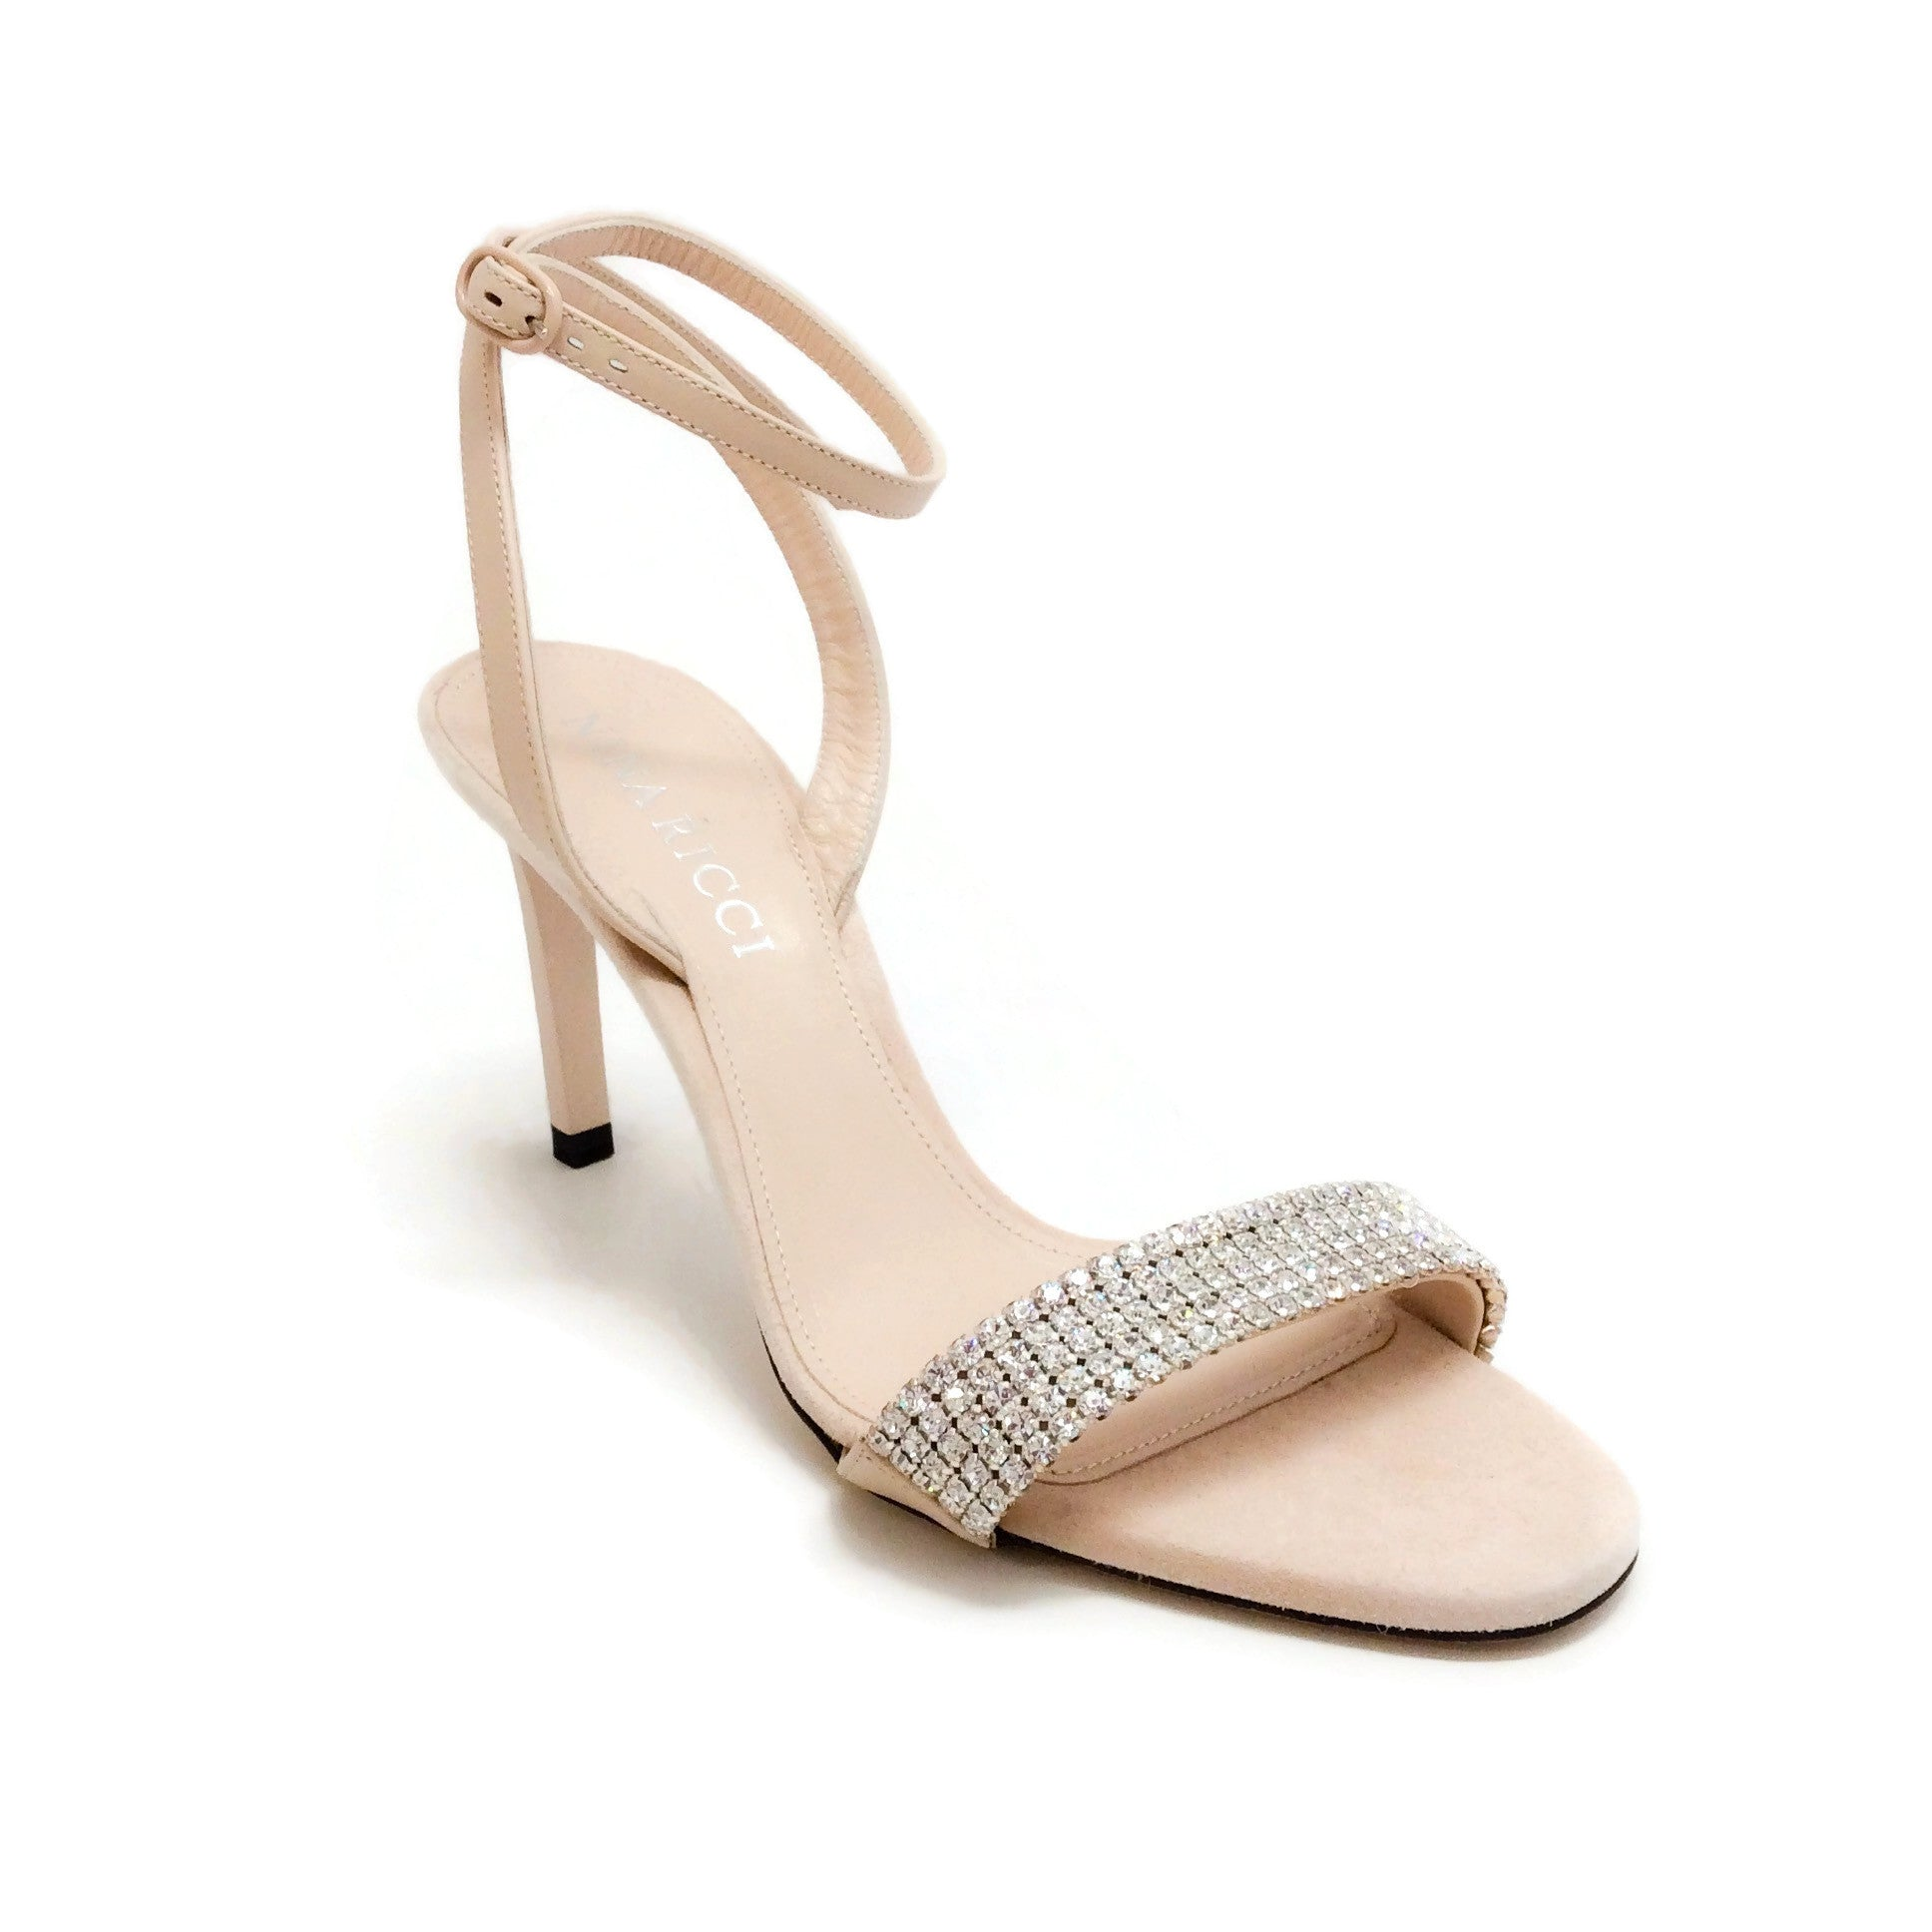 Nina Ricci Bisque Crystal Embellished Sandals